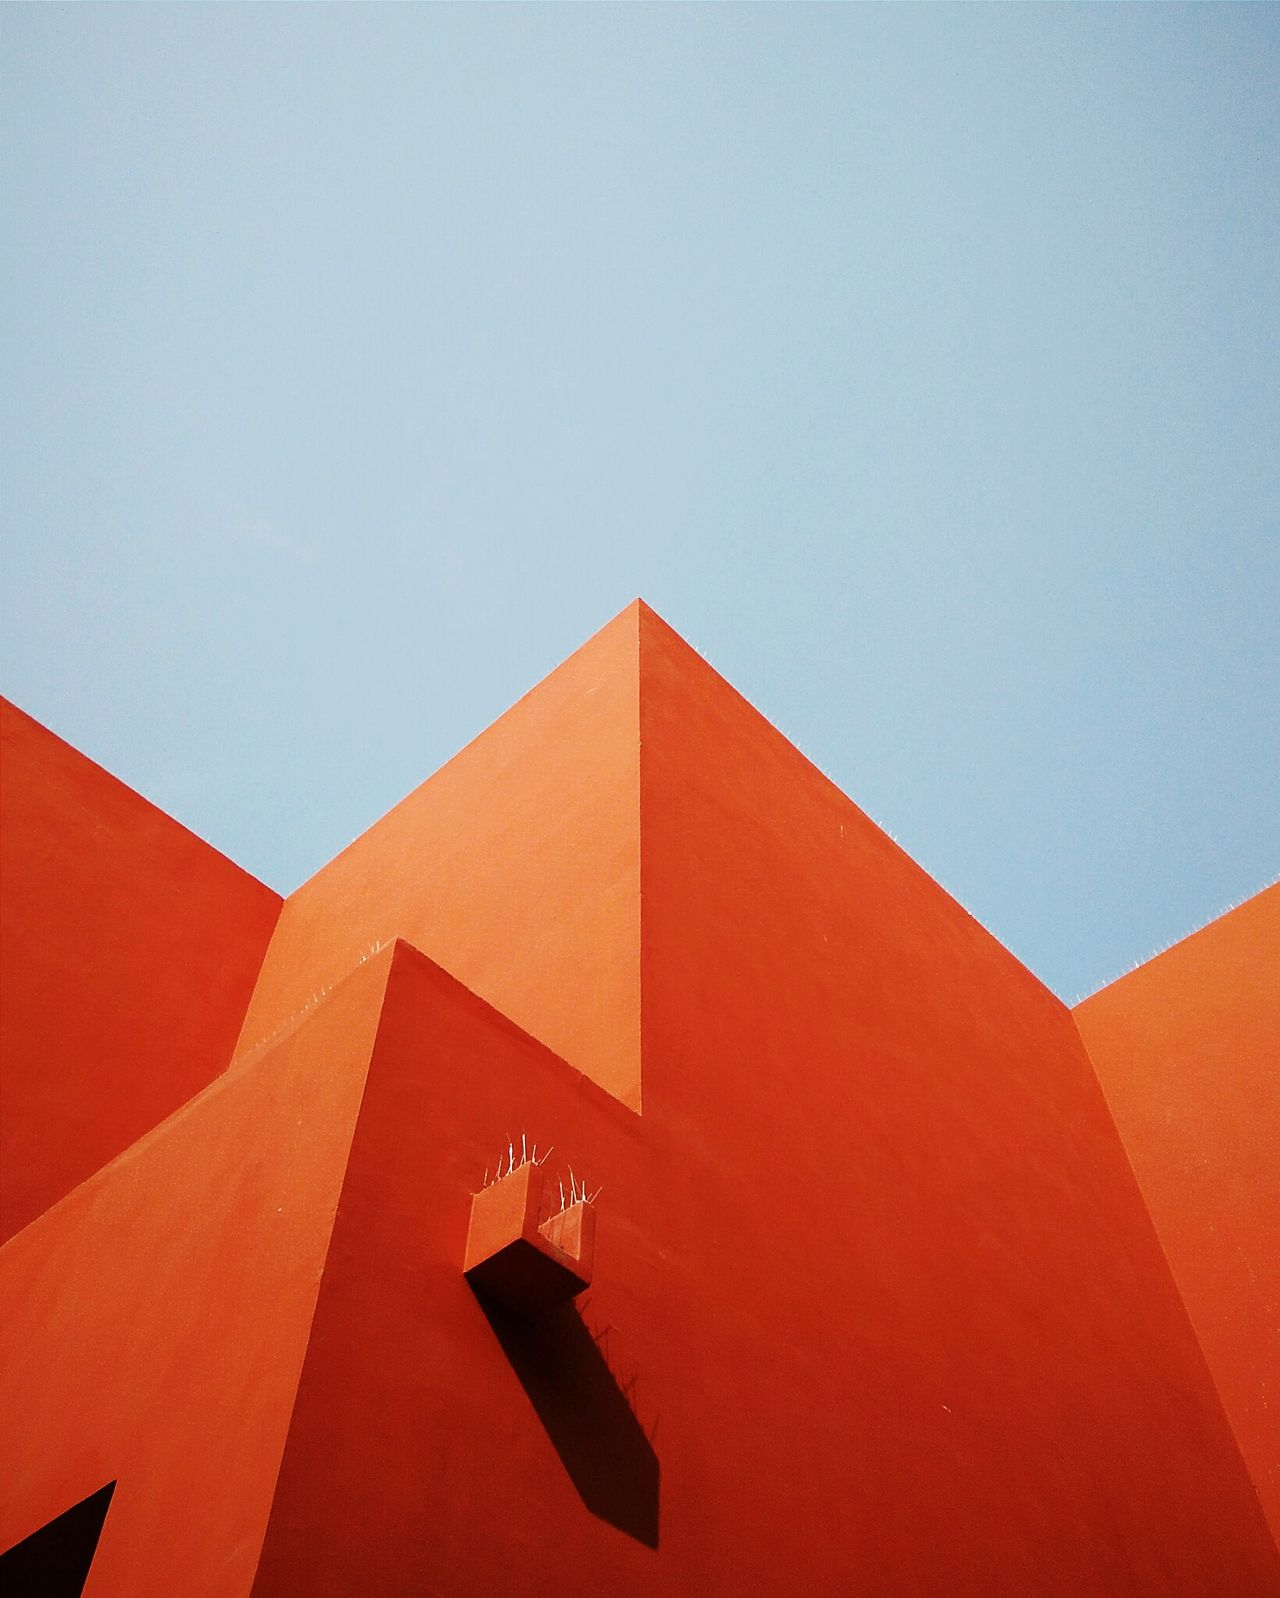 TakeoverContrast Geometric Shape Architecture Blue Orange Modern No People Multi Colored Outdoors Minimalism Minimal Light And Shadow Abstract Minimalist Architecture Art Is Everywhere Break The Mold